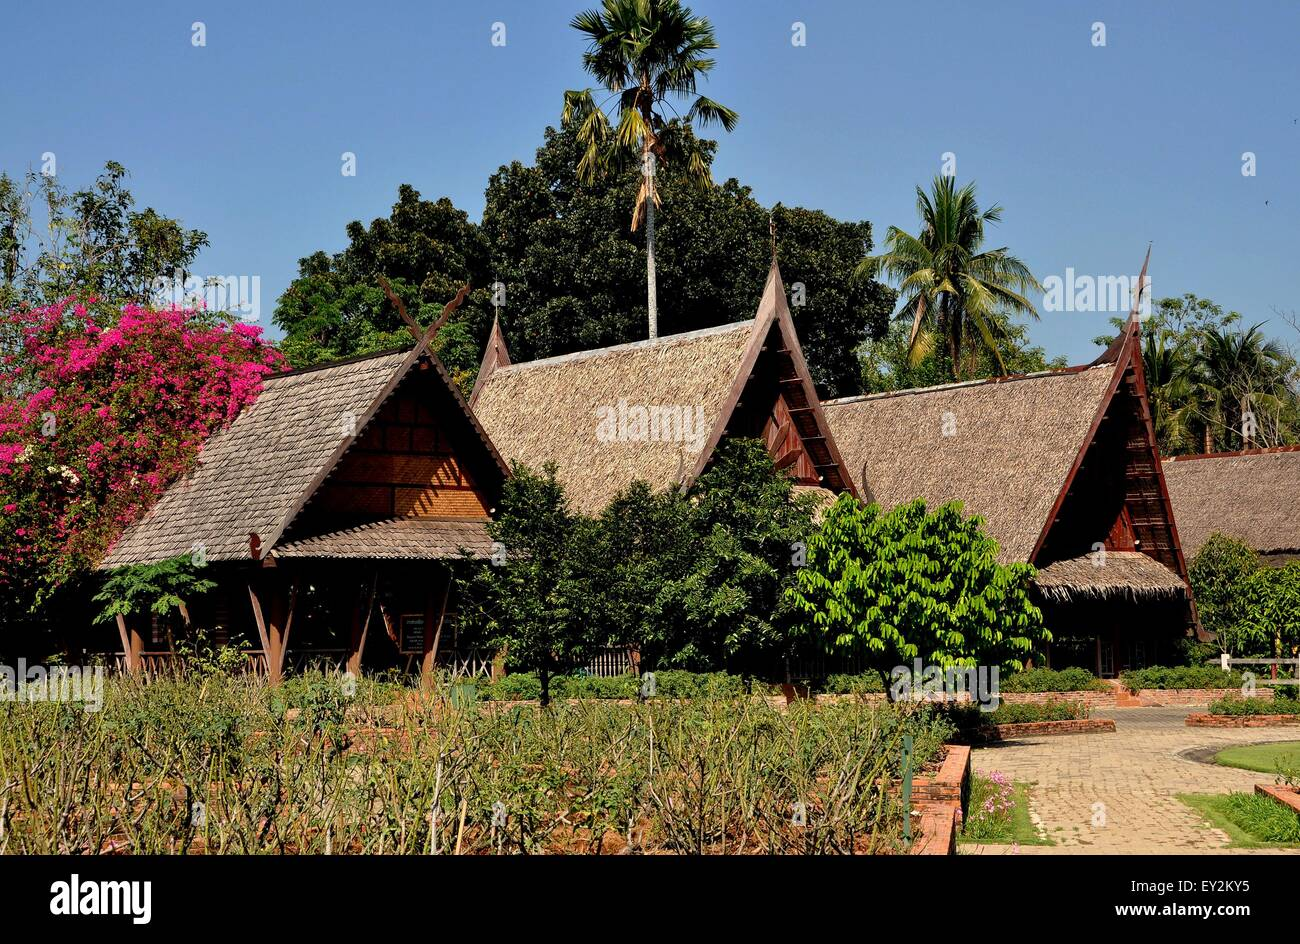 Sampan thailand a row of traditional thatched roof wooden thai stock photo royalty free image - Traditional houses attic ...